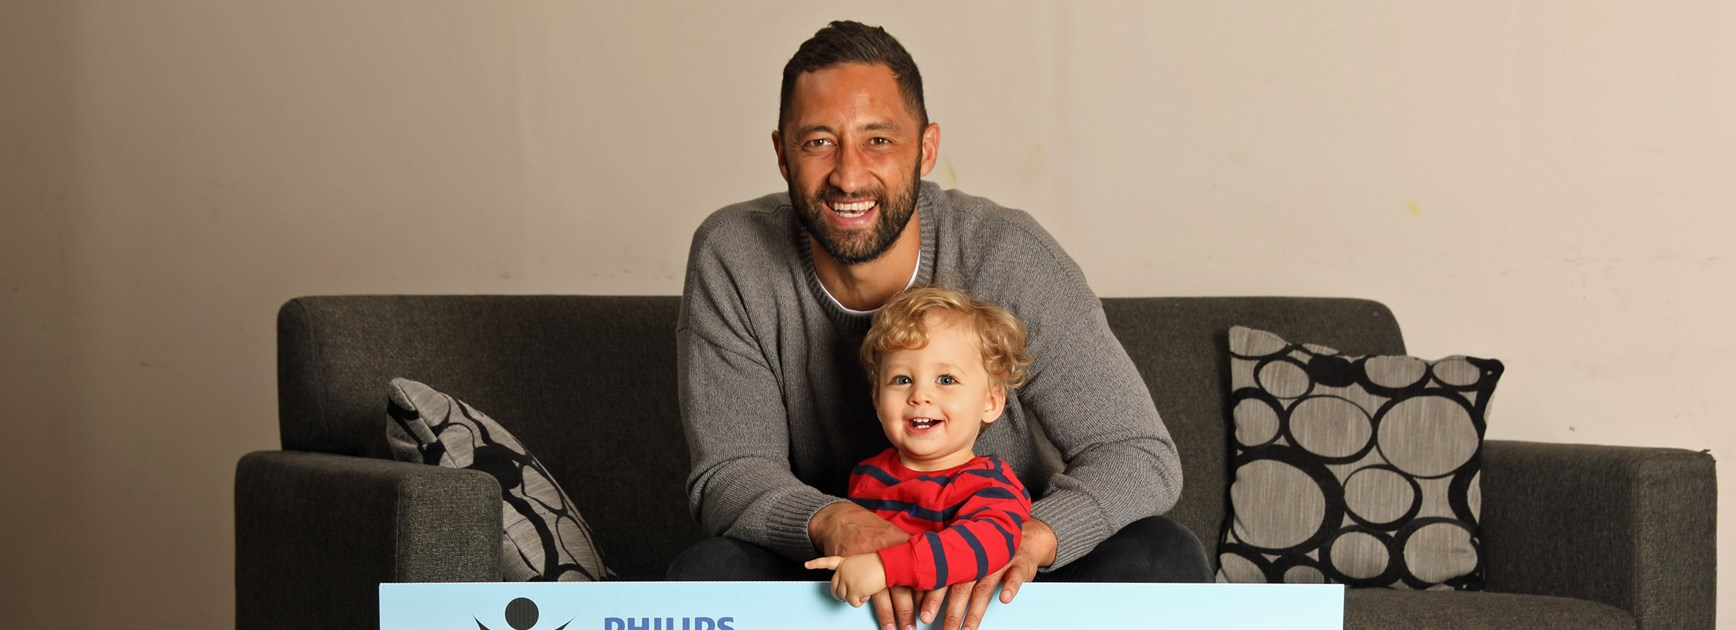 Nominations open the 2020 Philips Sports Dad of the Year